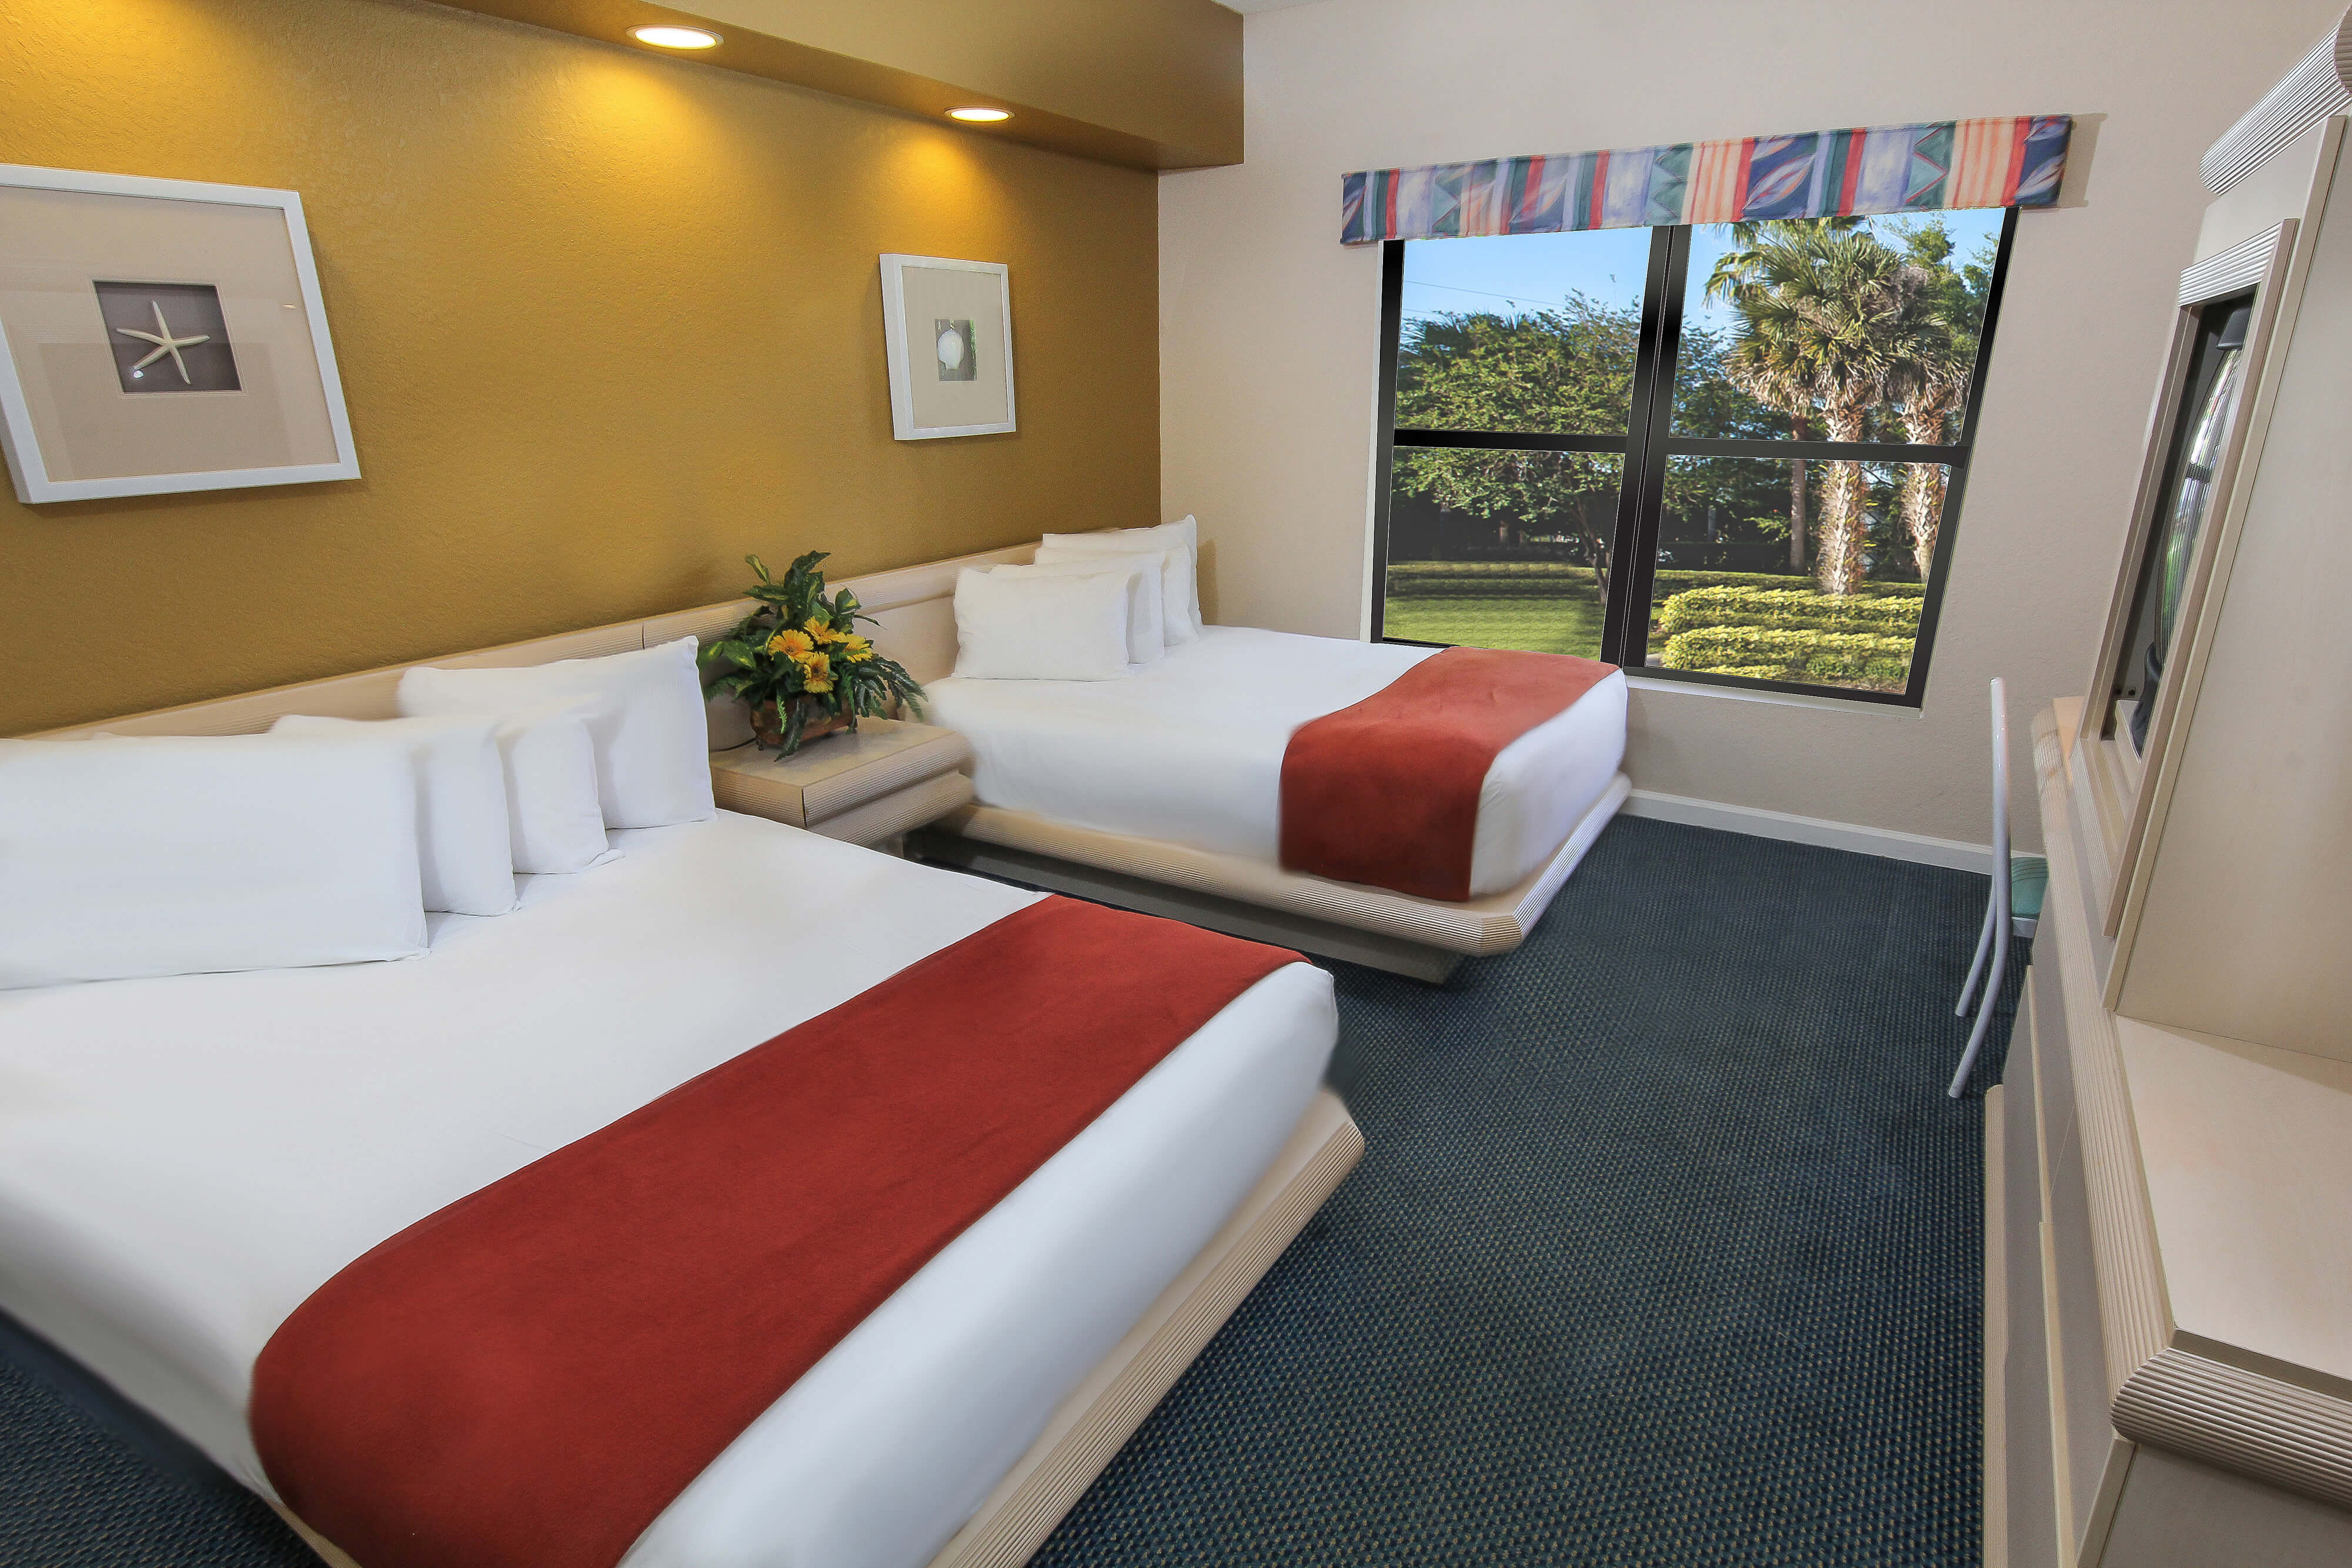 Studio Villa Beds | Westgate Vacation Villas Resort & Spa | Orlando, FL | Westgate Resorts